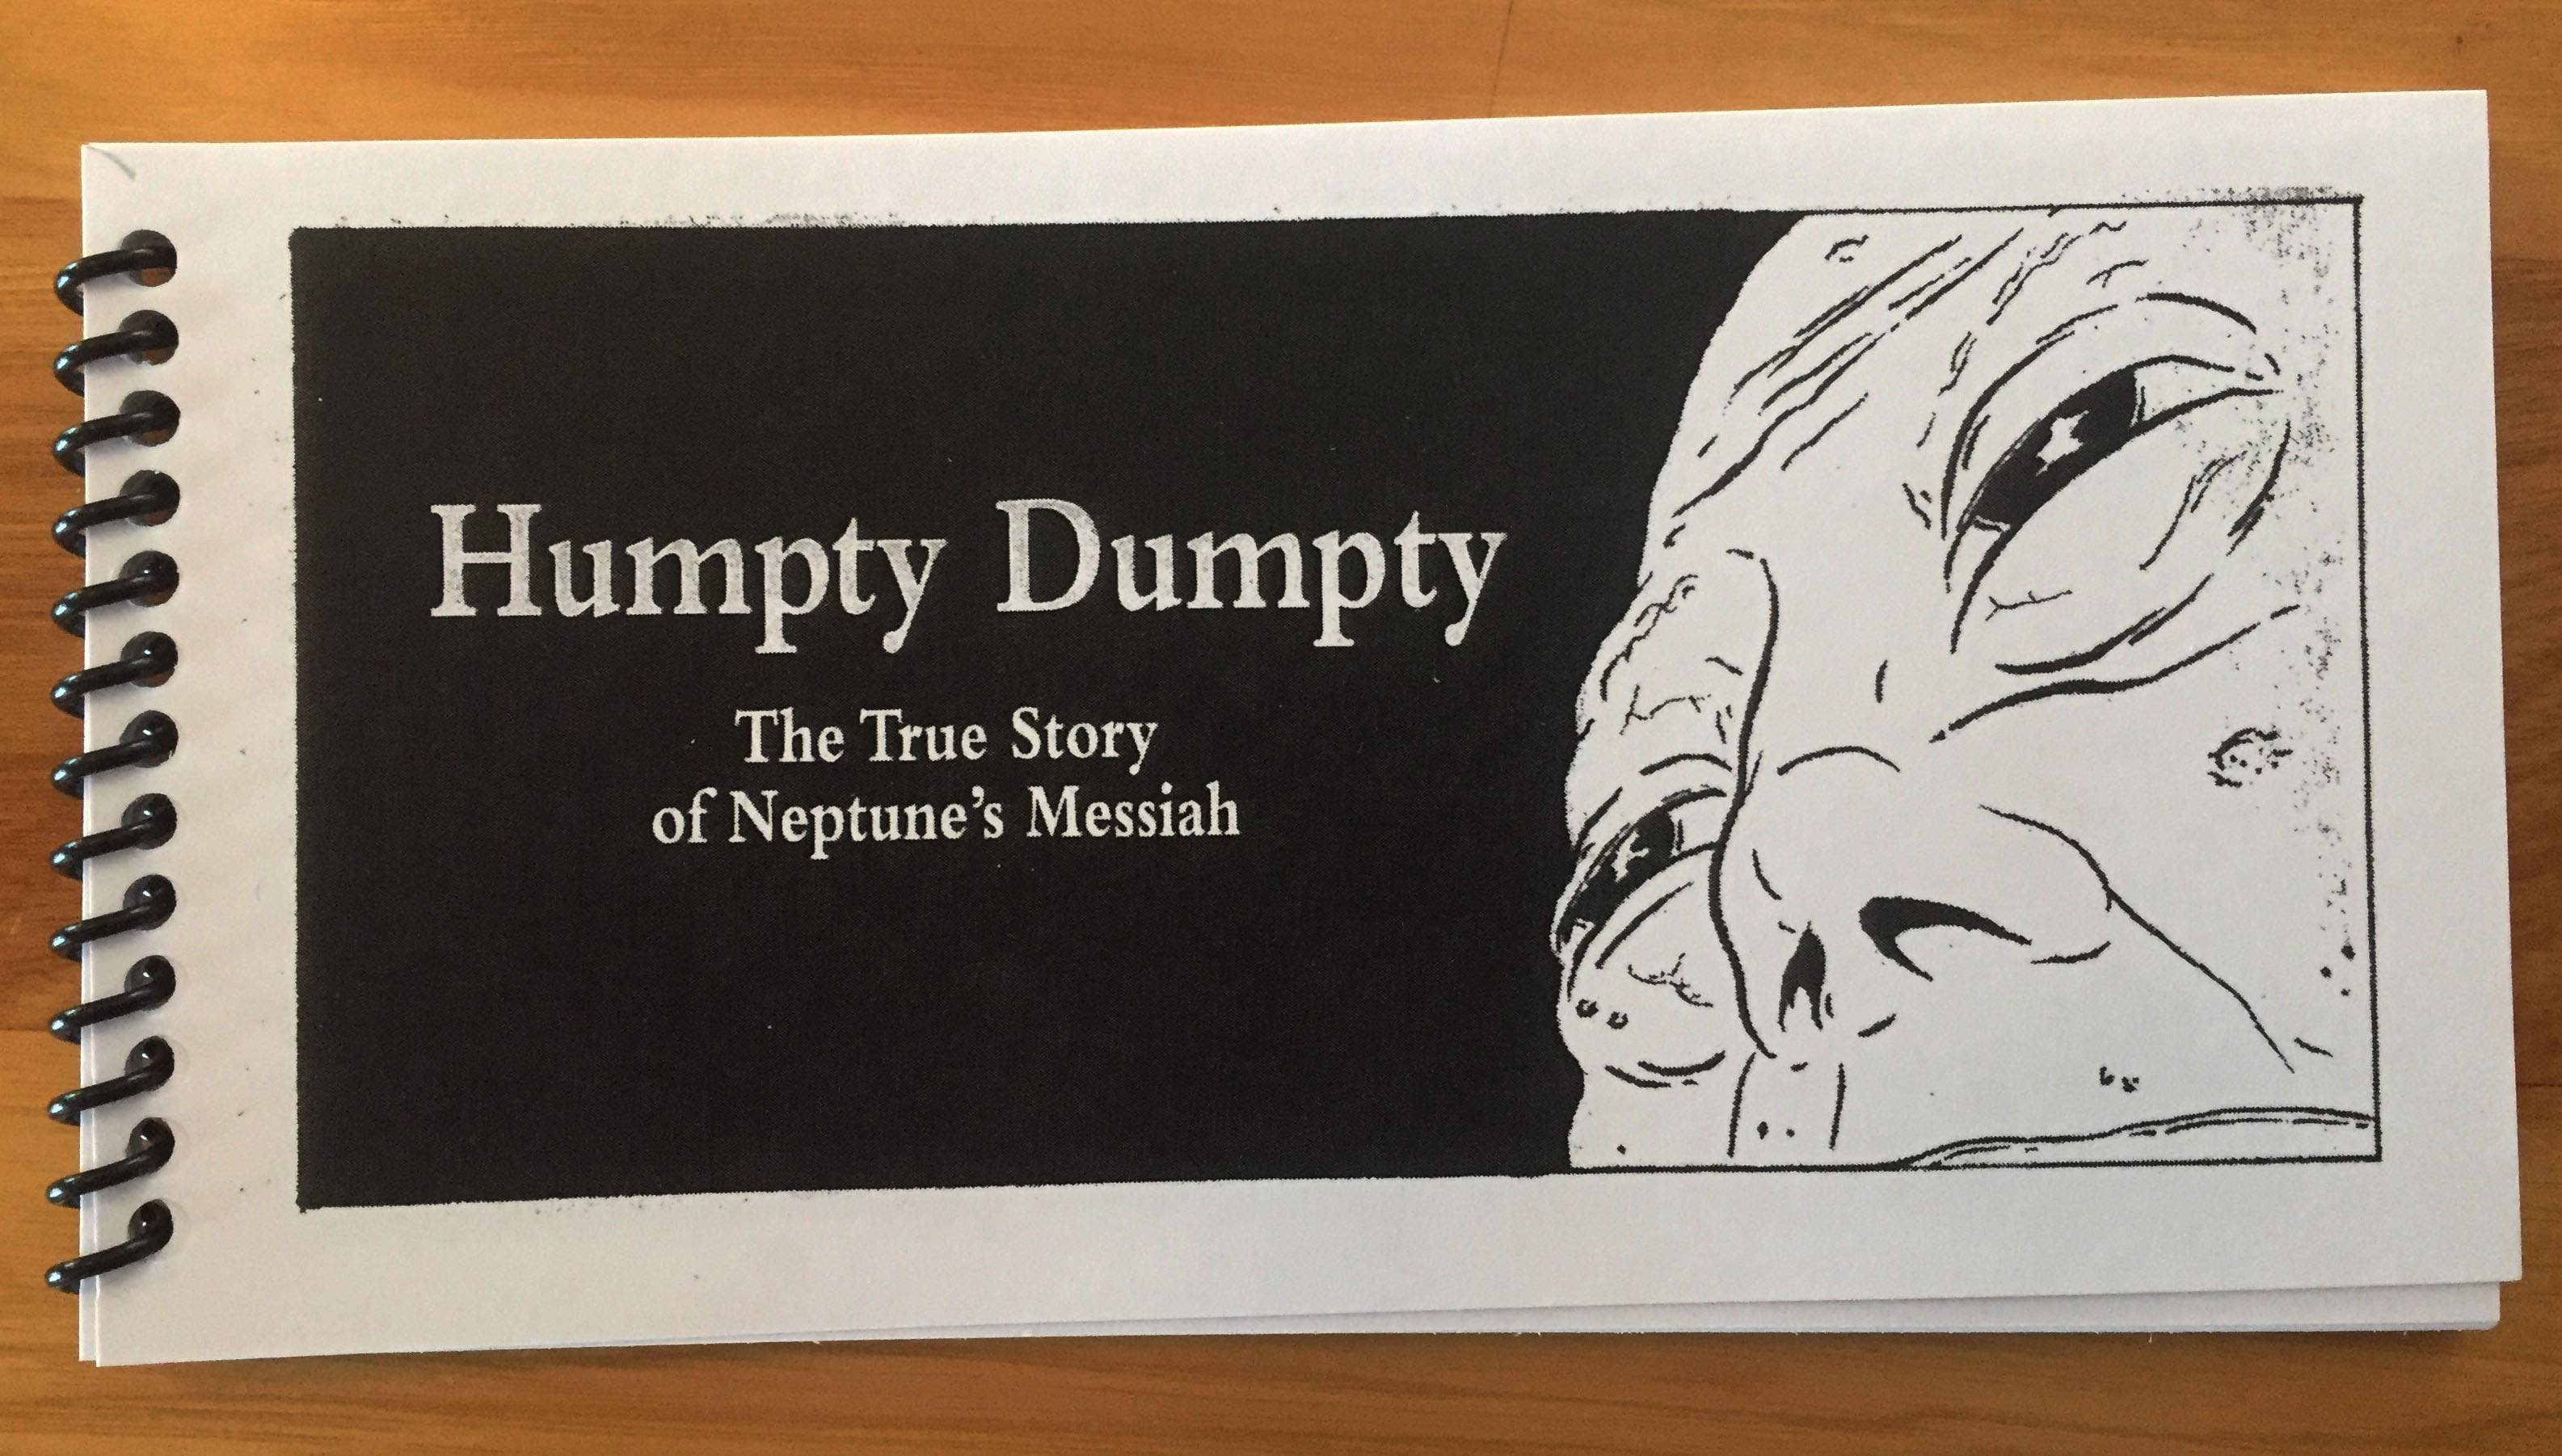 Humpty Dumpty - The True Story of Neptune's Messiah